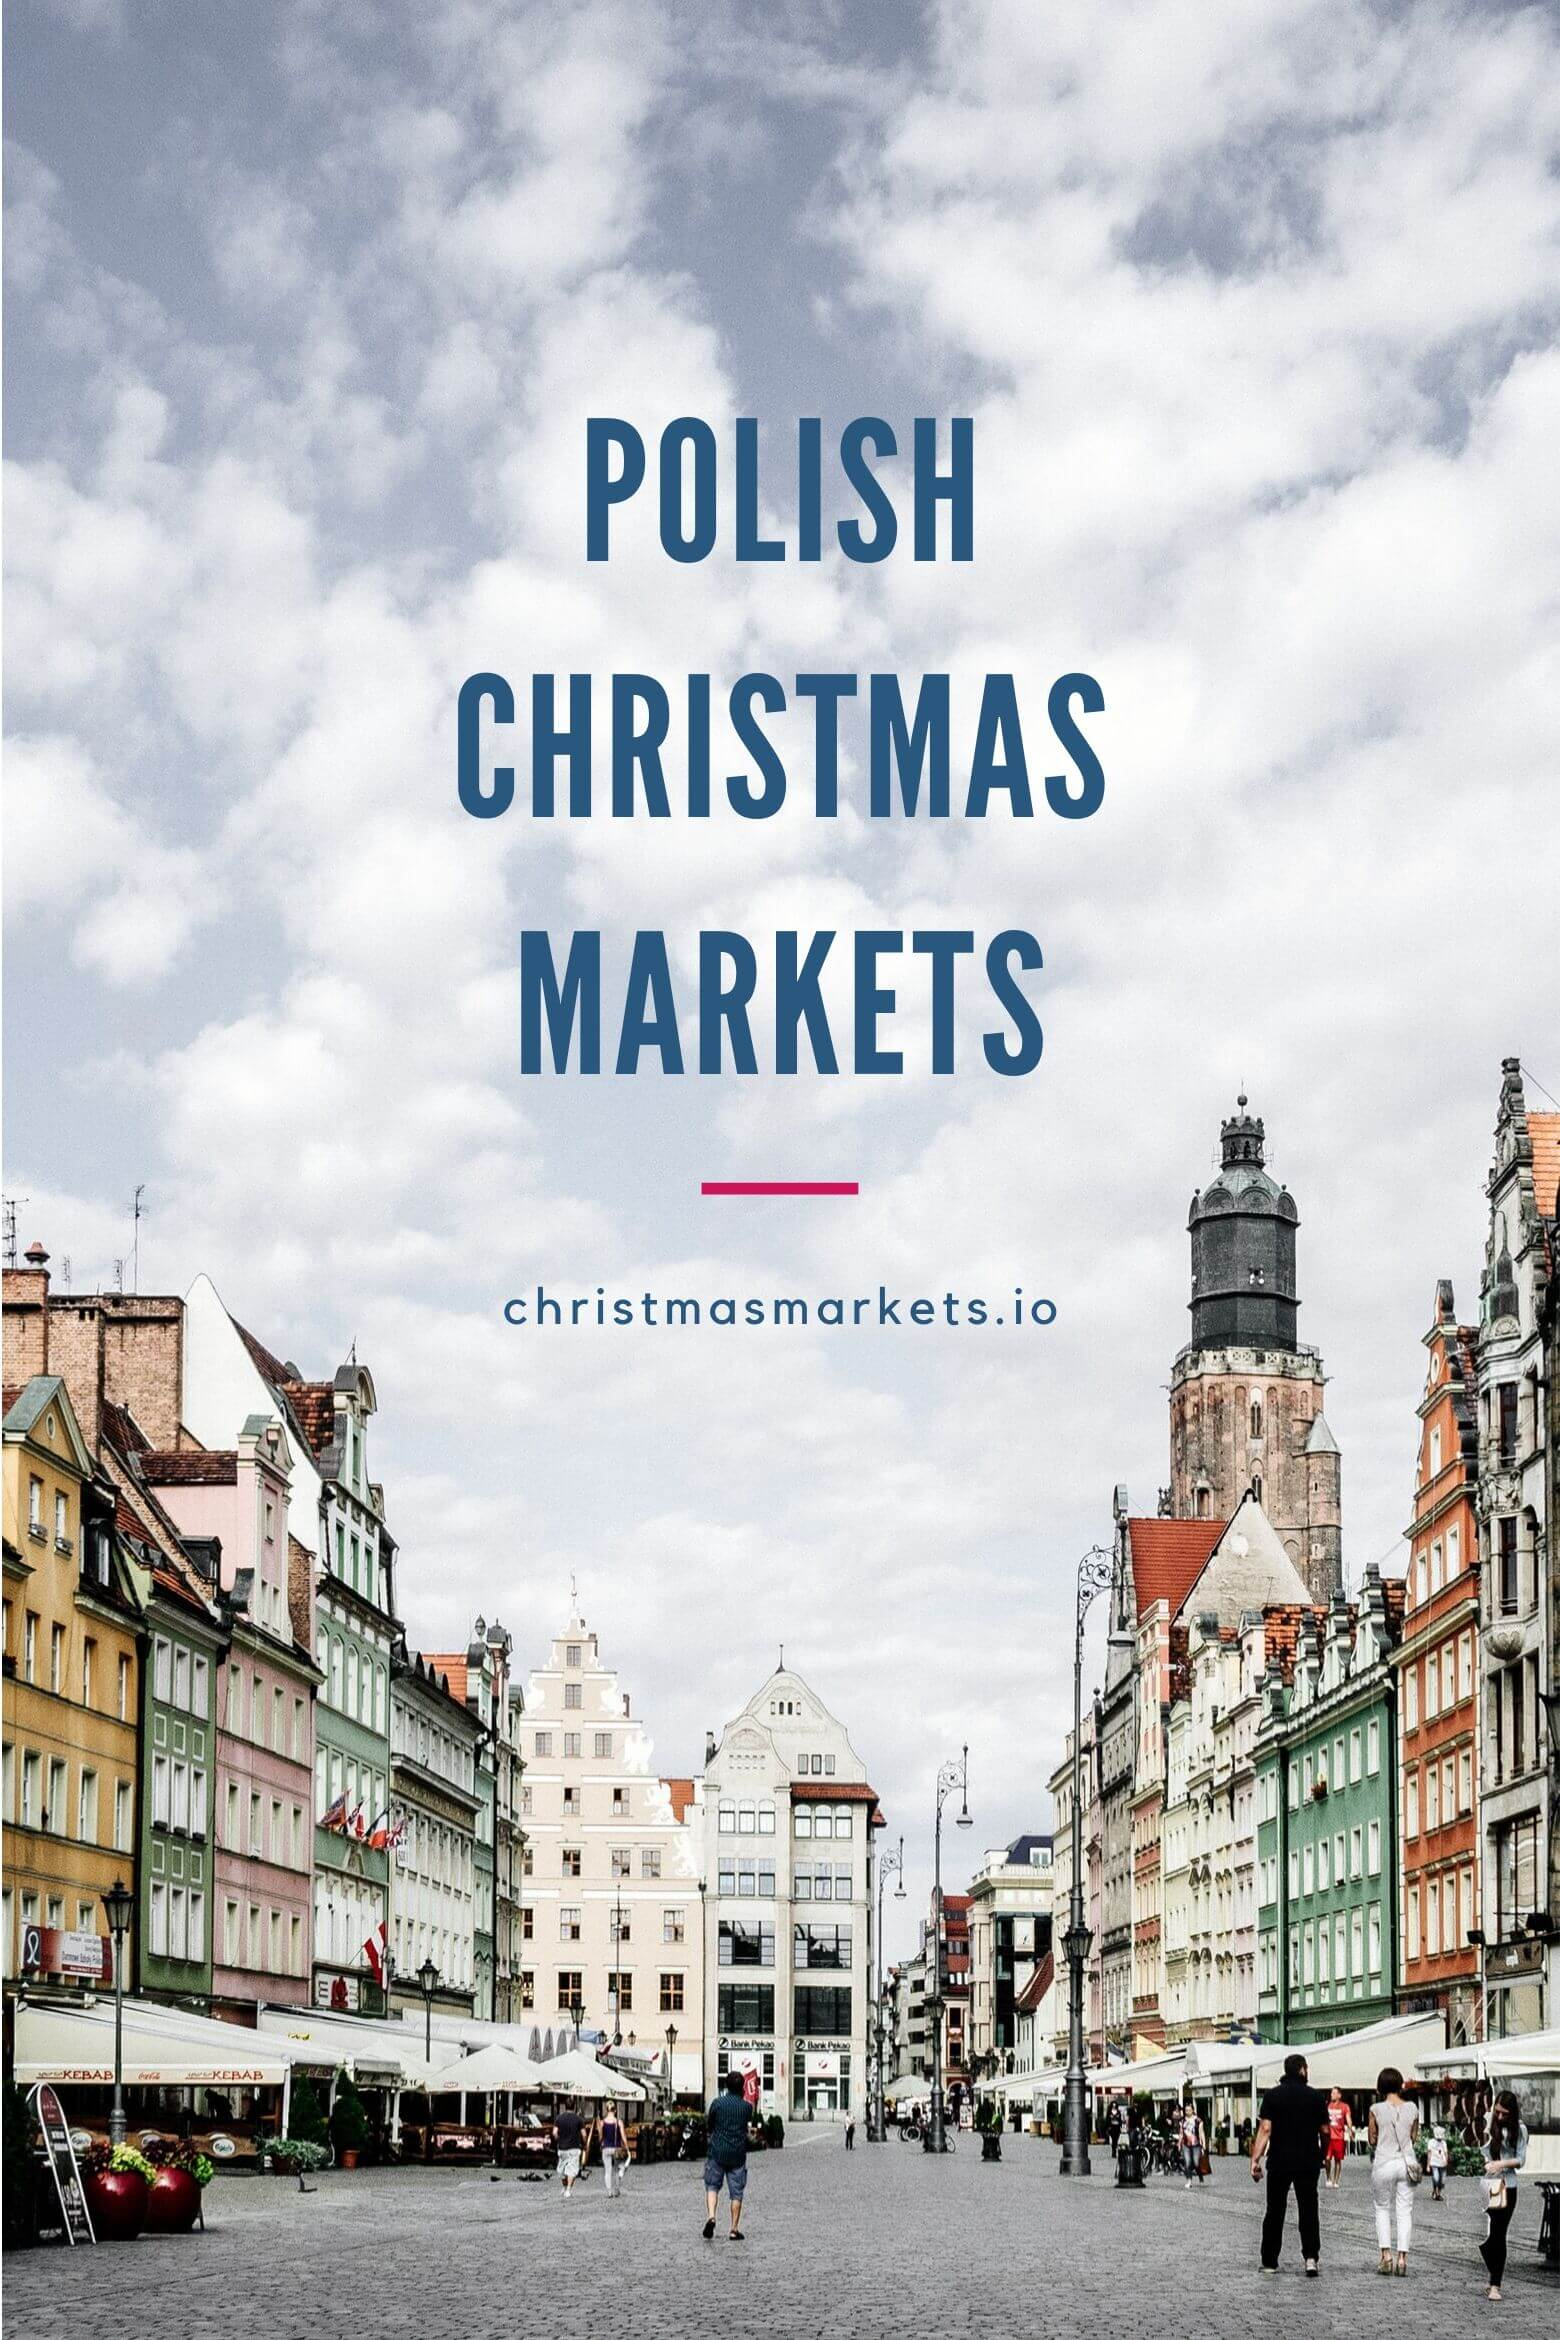 Charlotte Christmas Market.Top 7 Christmas Markets In Poland In 2019 Christmas Markets